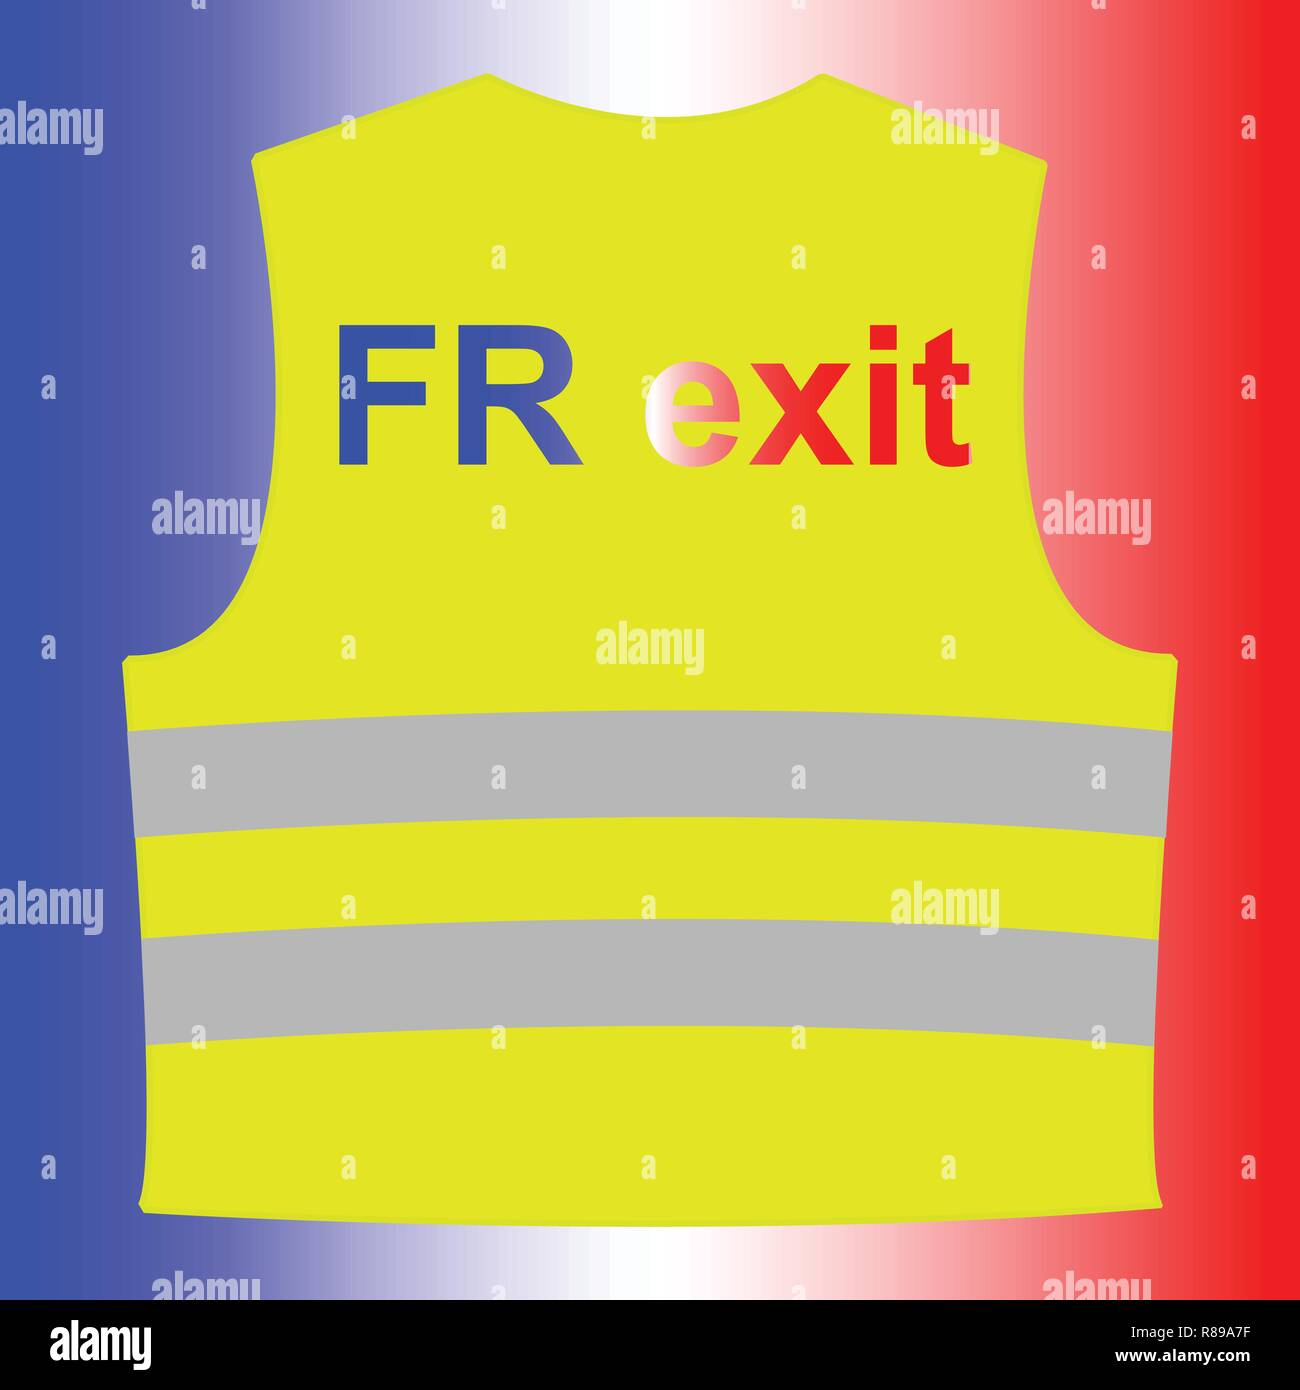 Gilet jaune with text FR exit written on it and with the flag of France as background - Stock Image